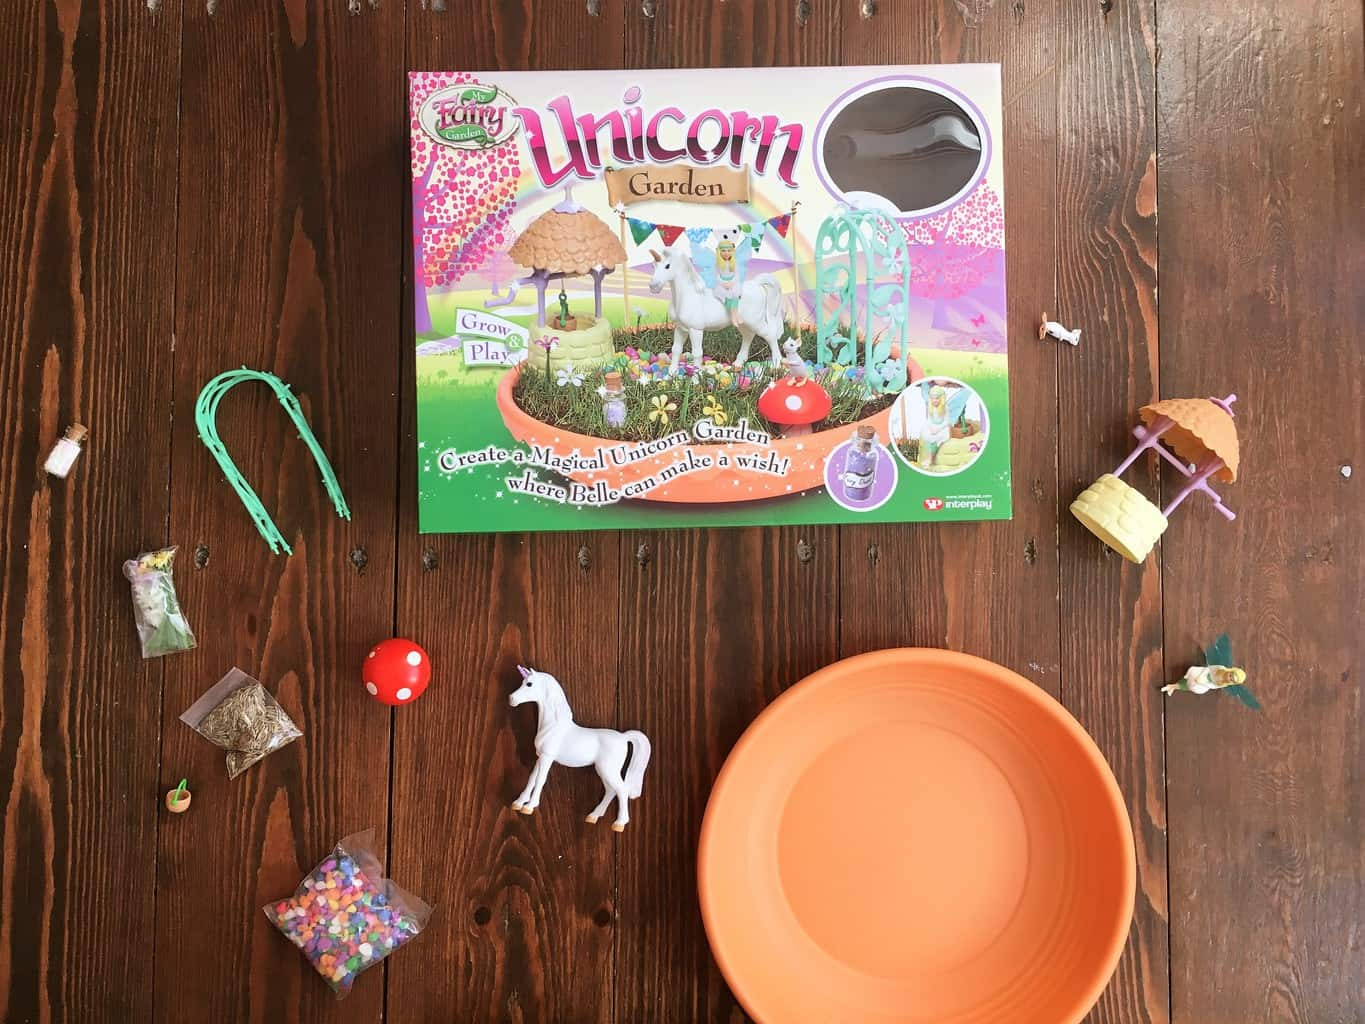 My Fairy Garden Unicorn Garden review and #giveaway